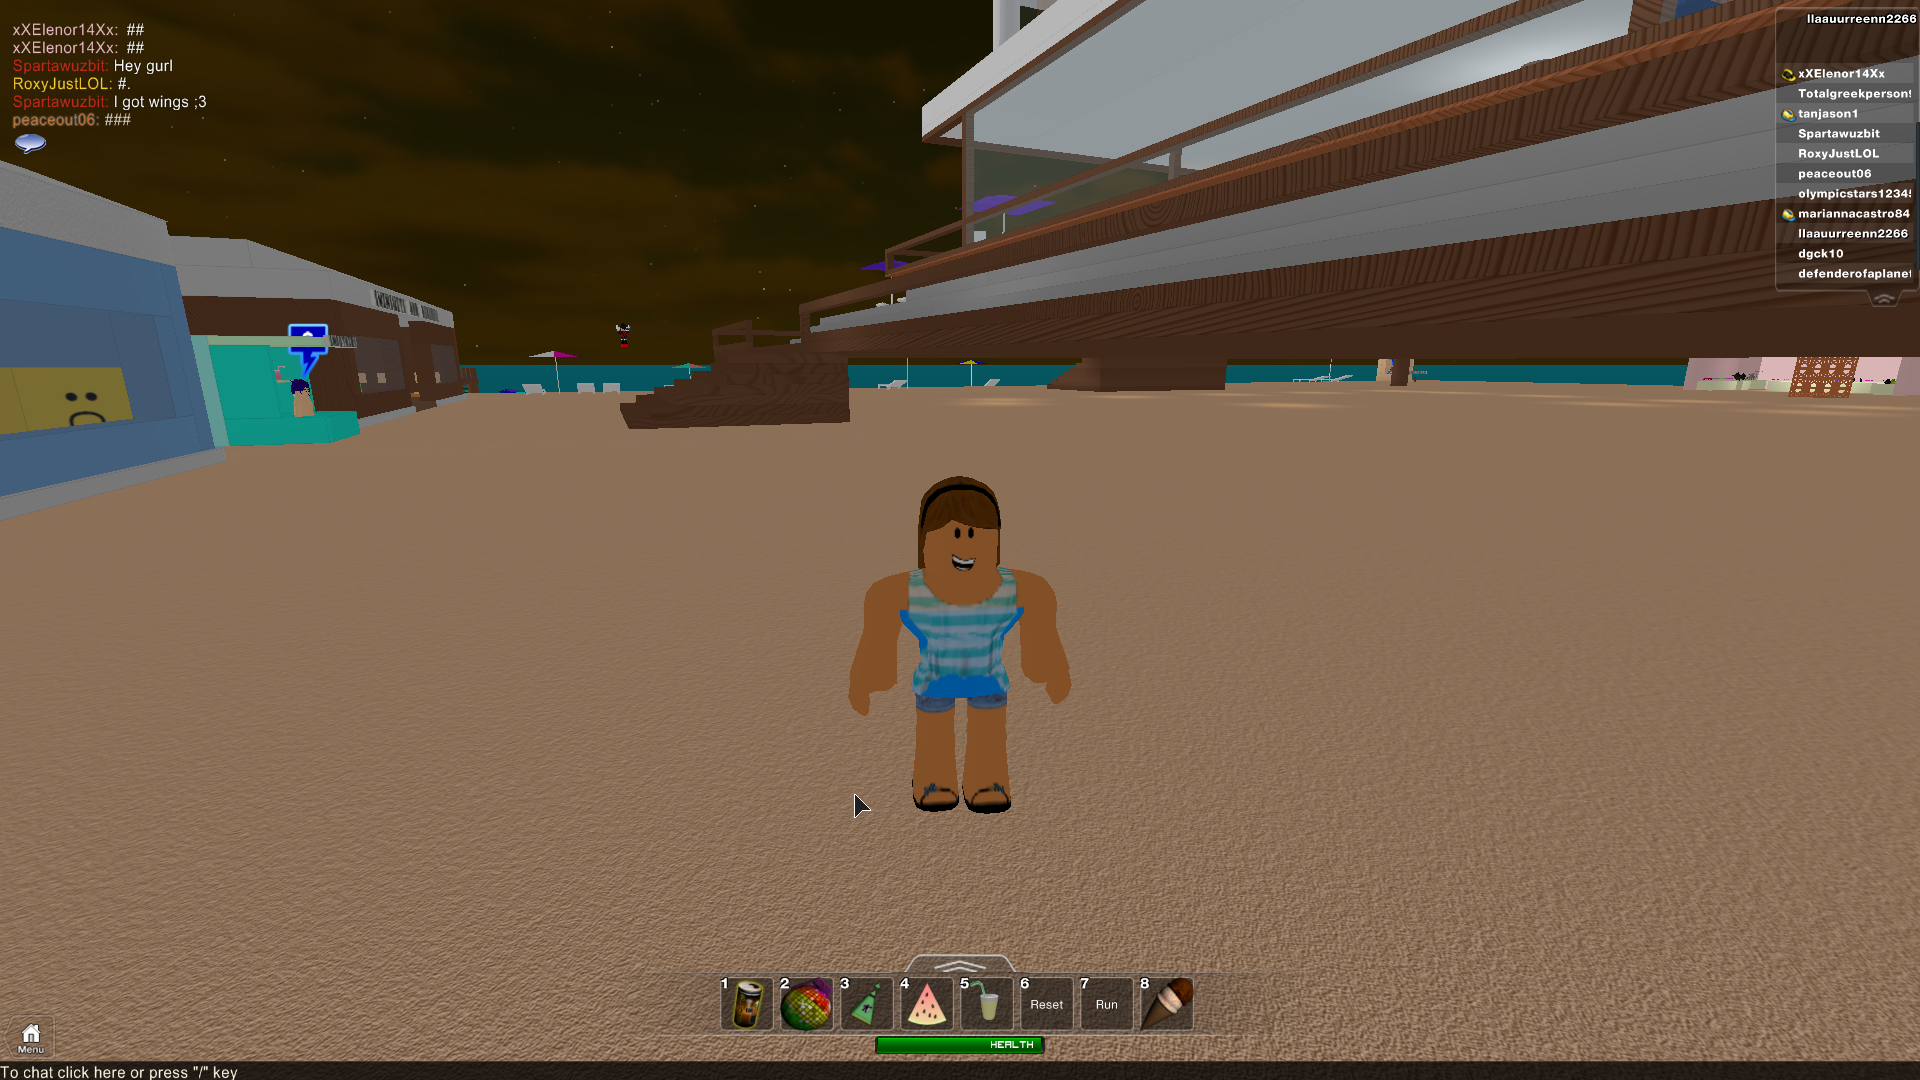 how to change a character in game on roblox